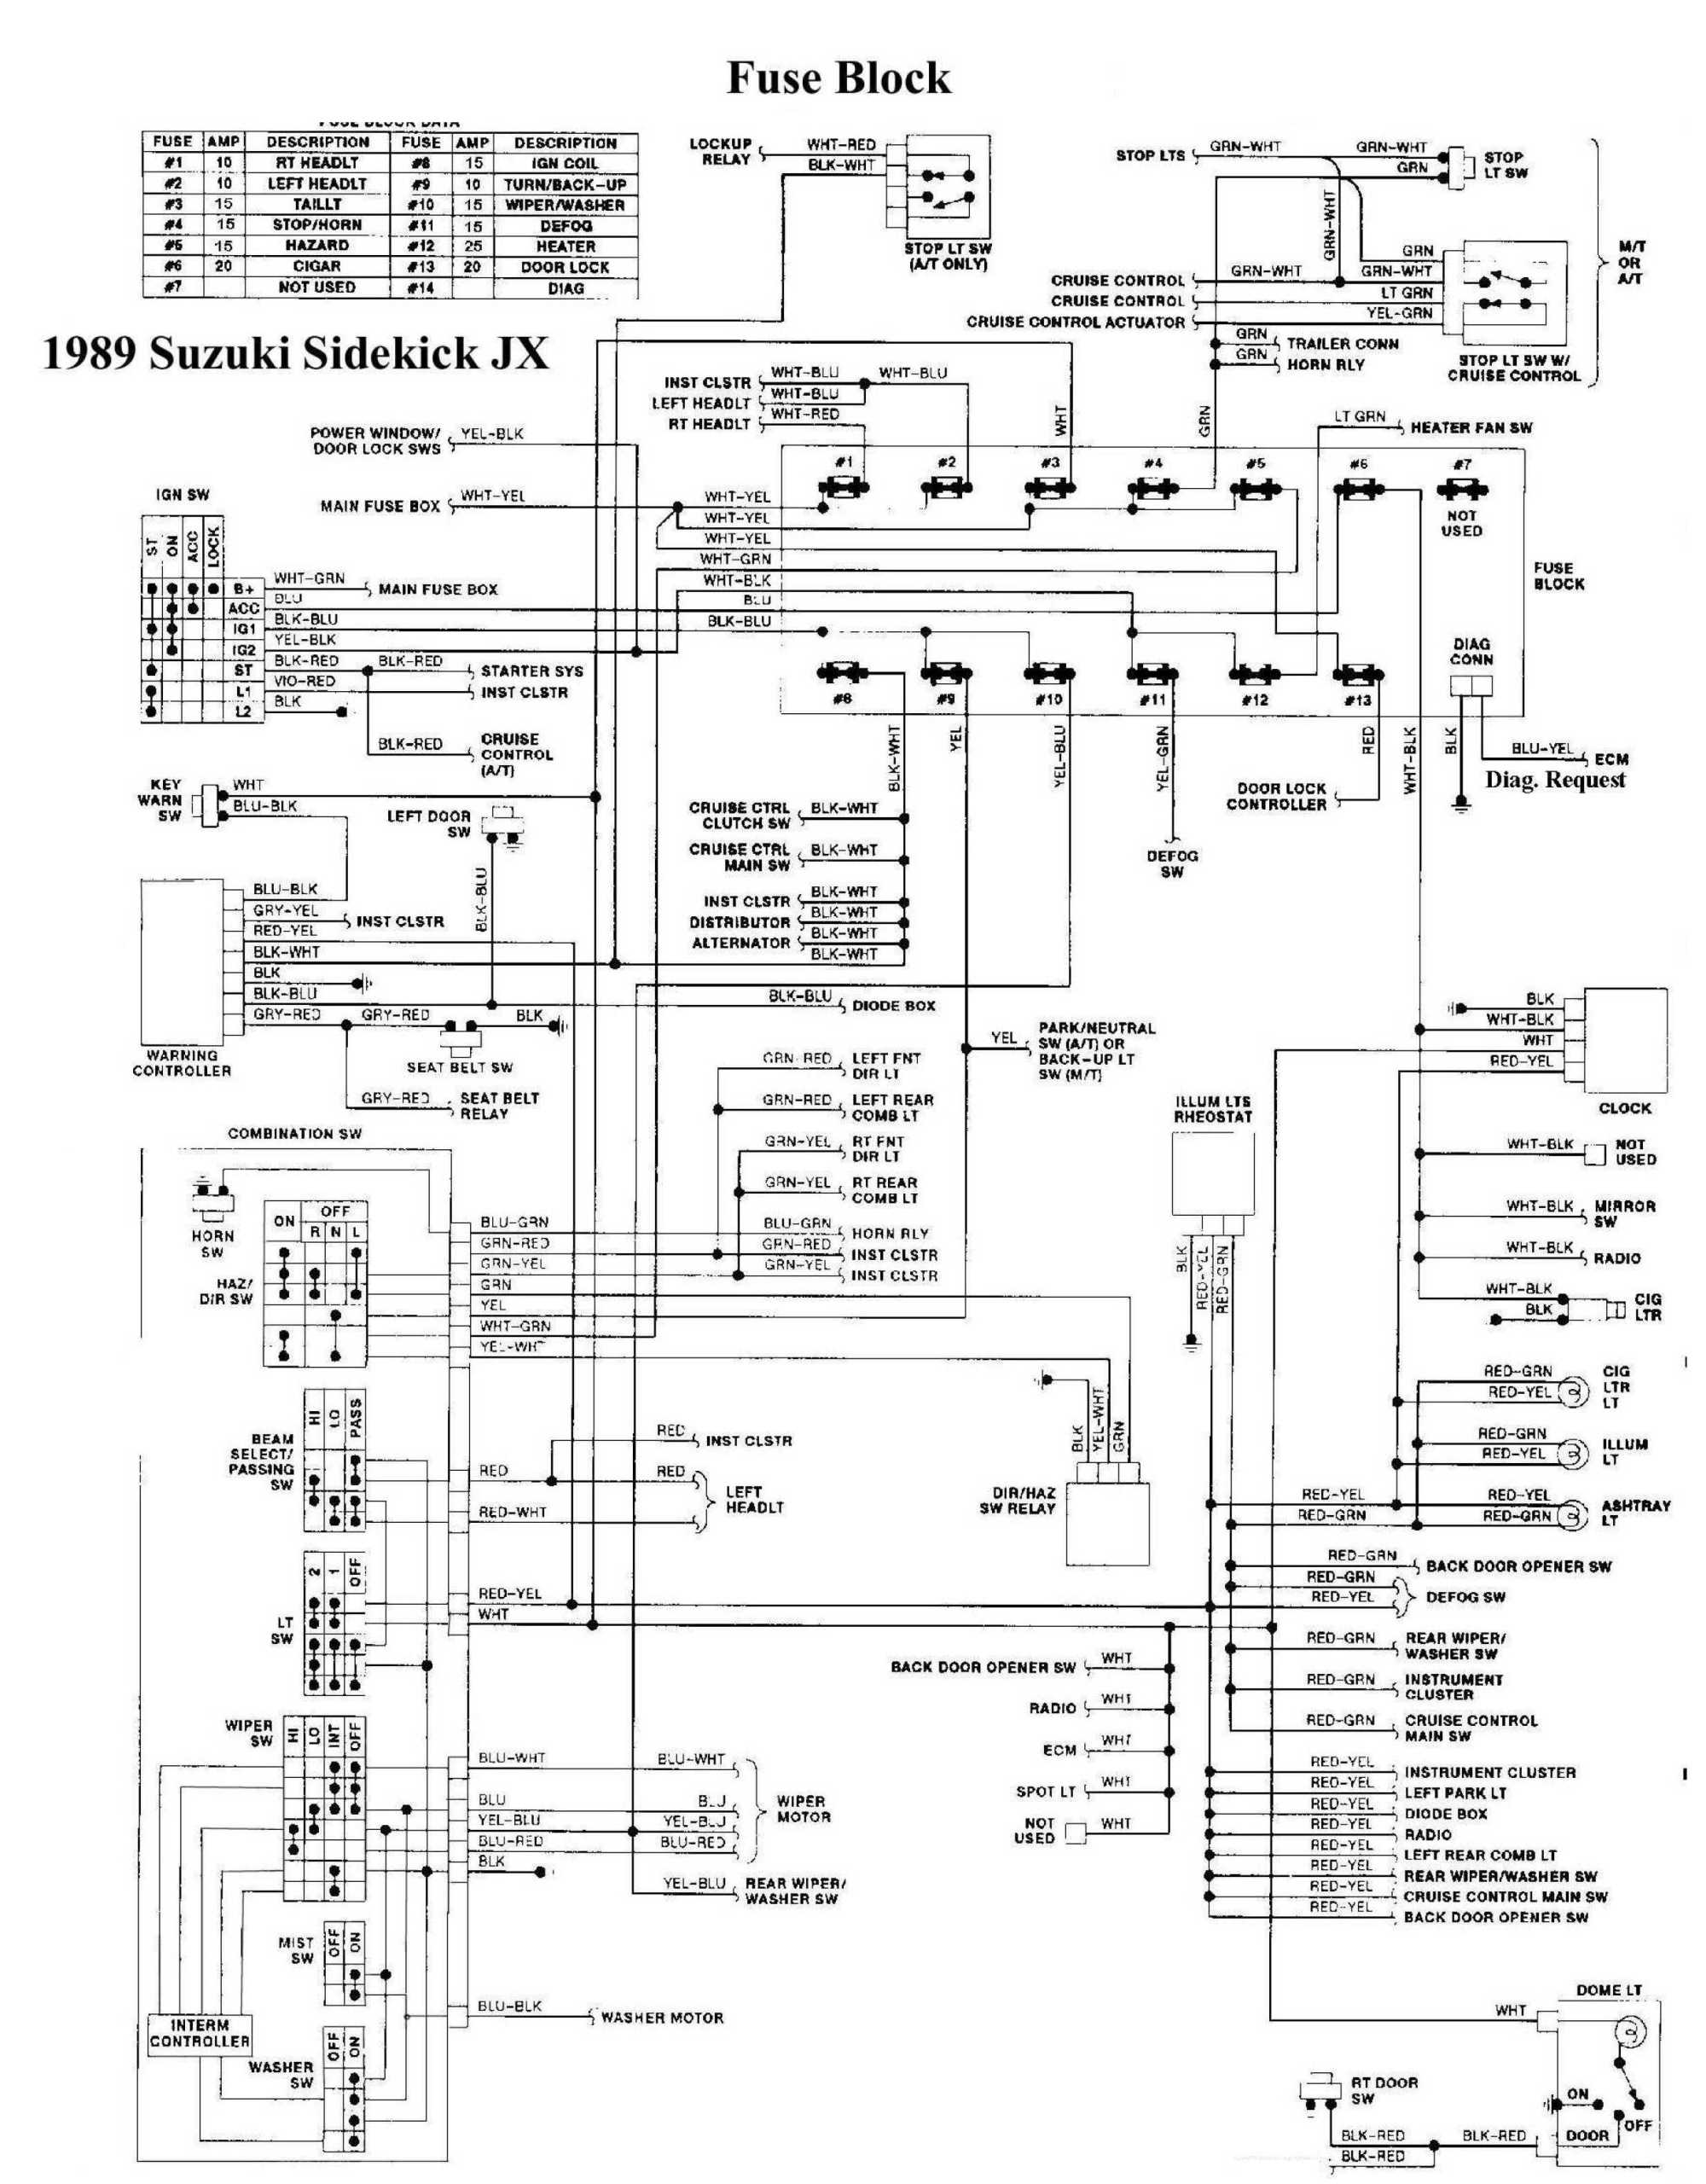 hight resolution of 1994 suzuki swift fuse panel diagram data wiring diagram 1994 suzuki swift fuse panel diagram